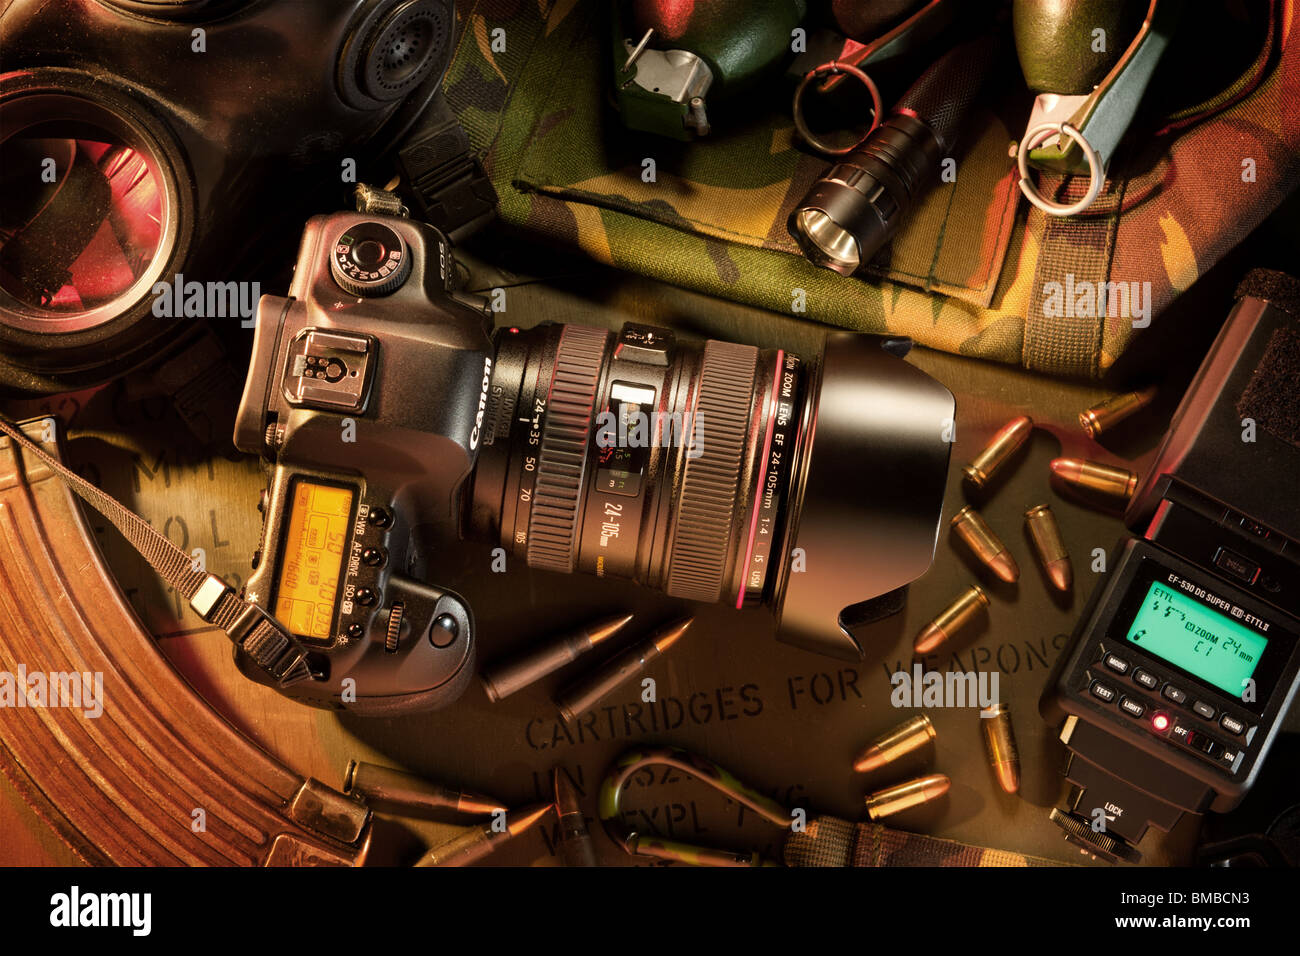 War photography - Stock Image